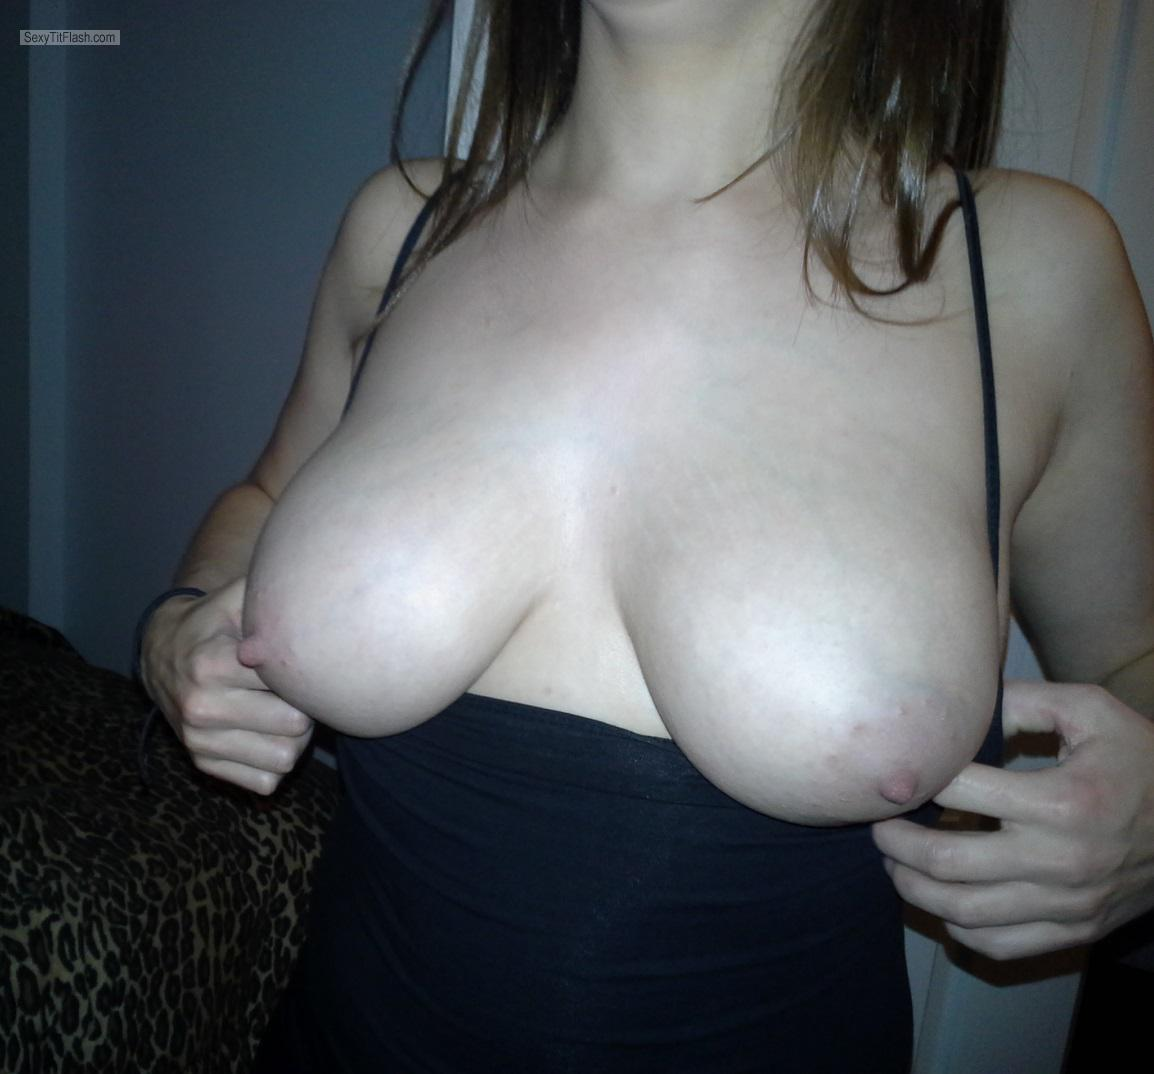 Tit Flash: My Big Tits - Ms. Busty from Canada